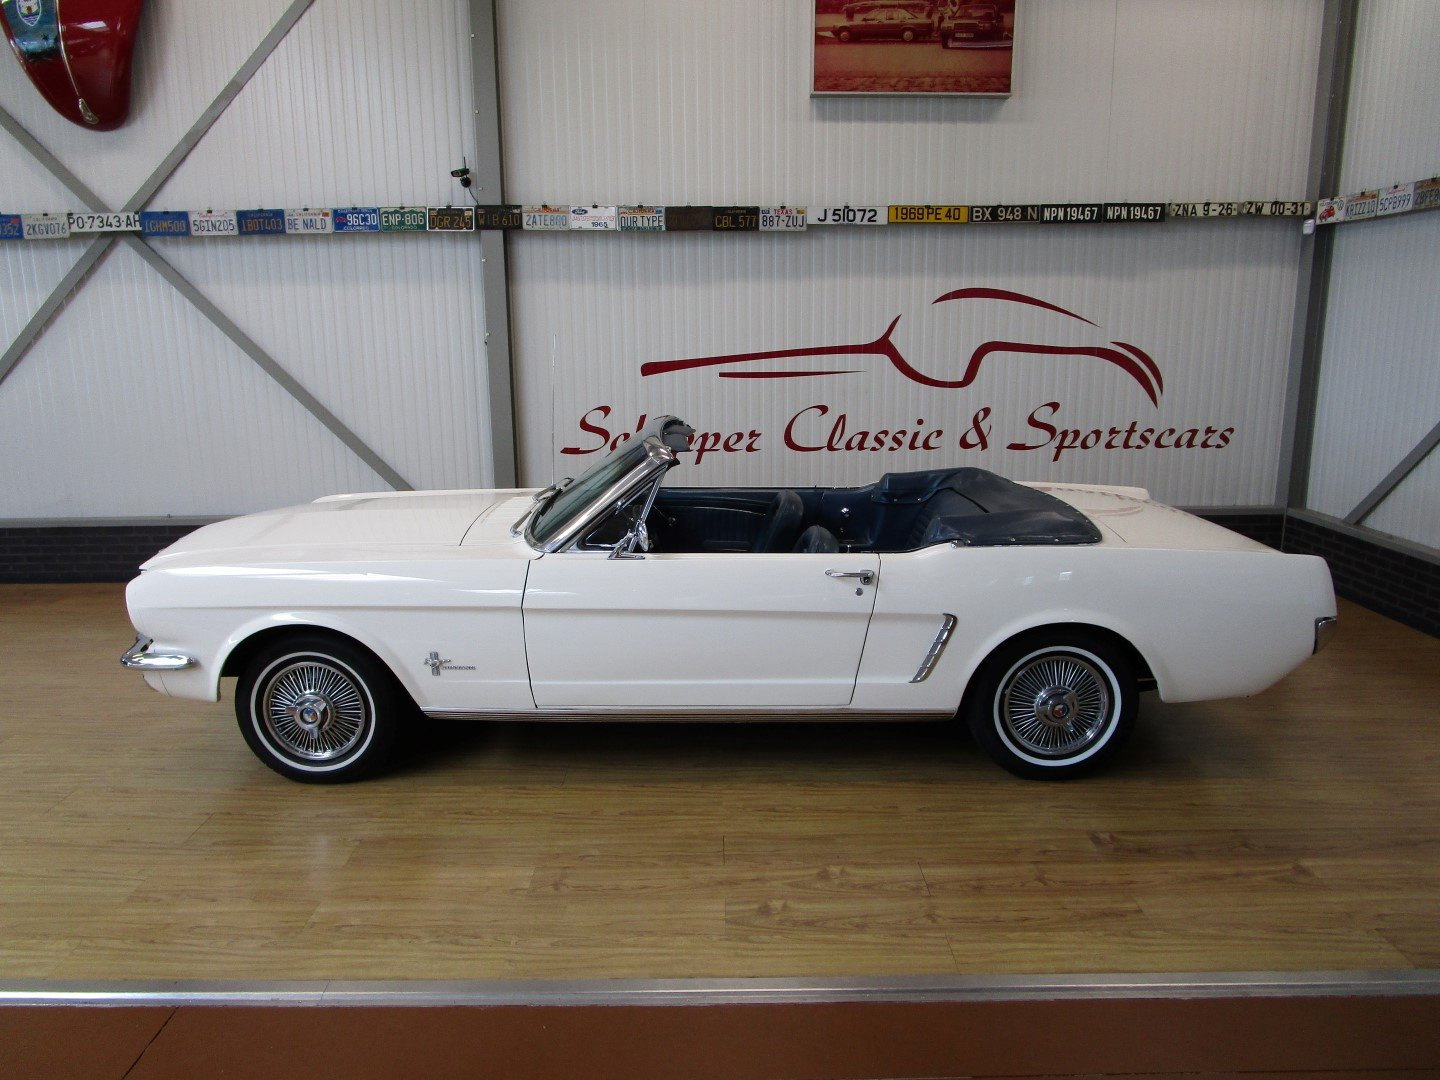 Ford Mustang 200CU Automatic Cabrio Early model 1964 1/2 For Sale (picture 2 of 6)